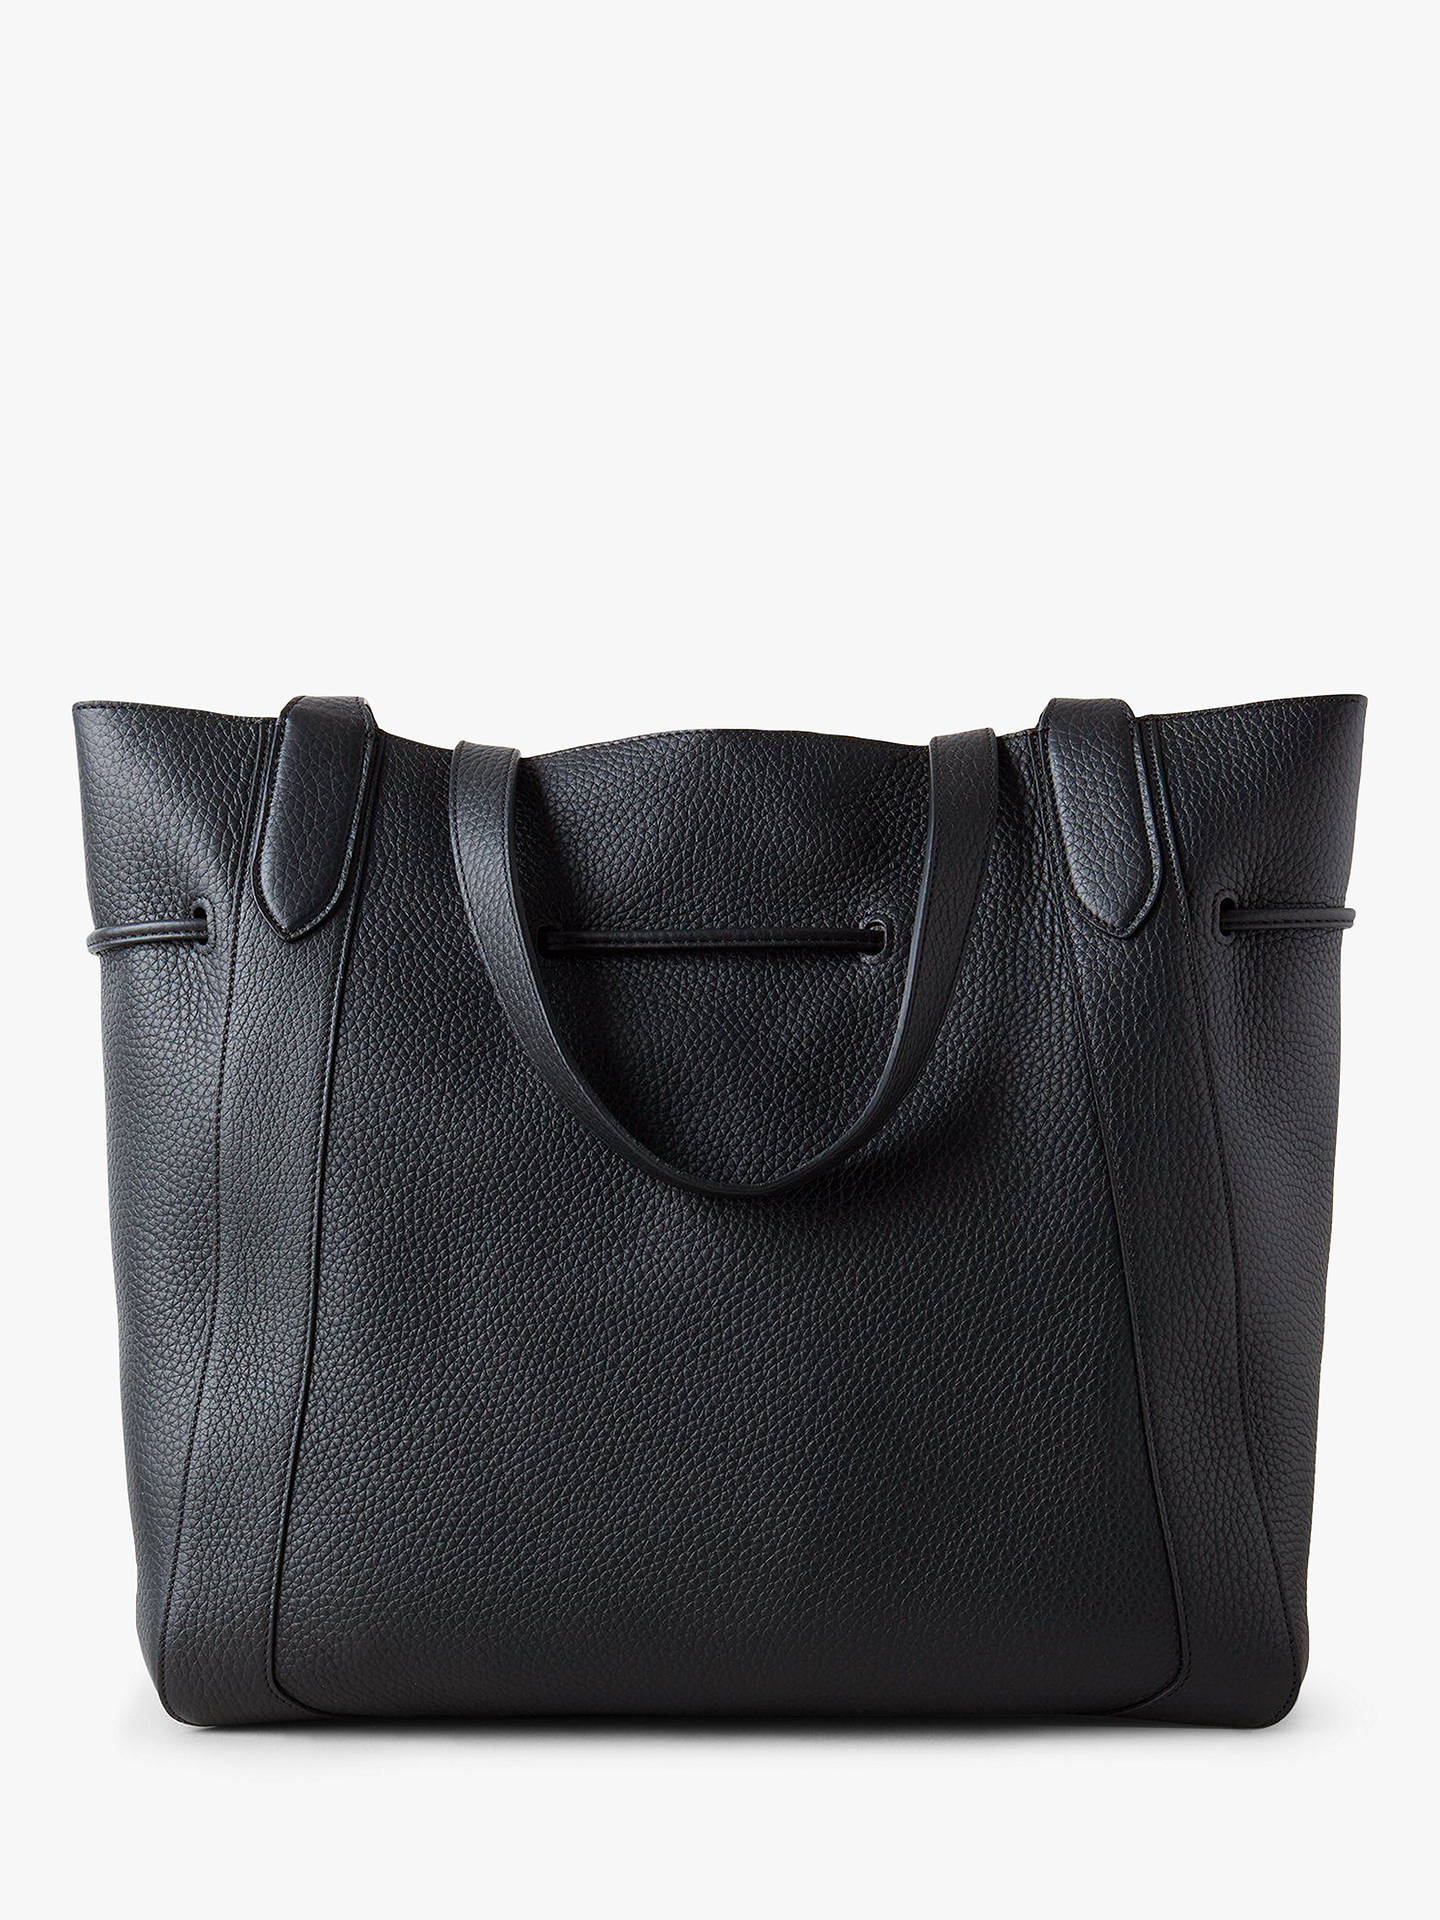 b47f089a44a6 Mulberry Millie Heavy Grain Leather Tote Bag, Black